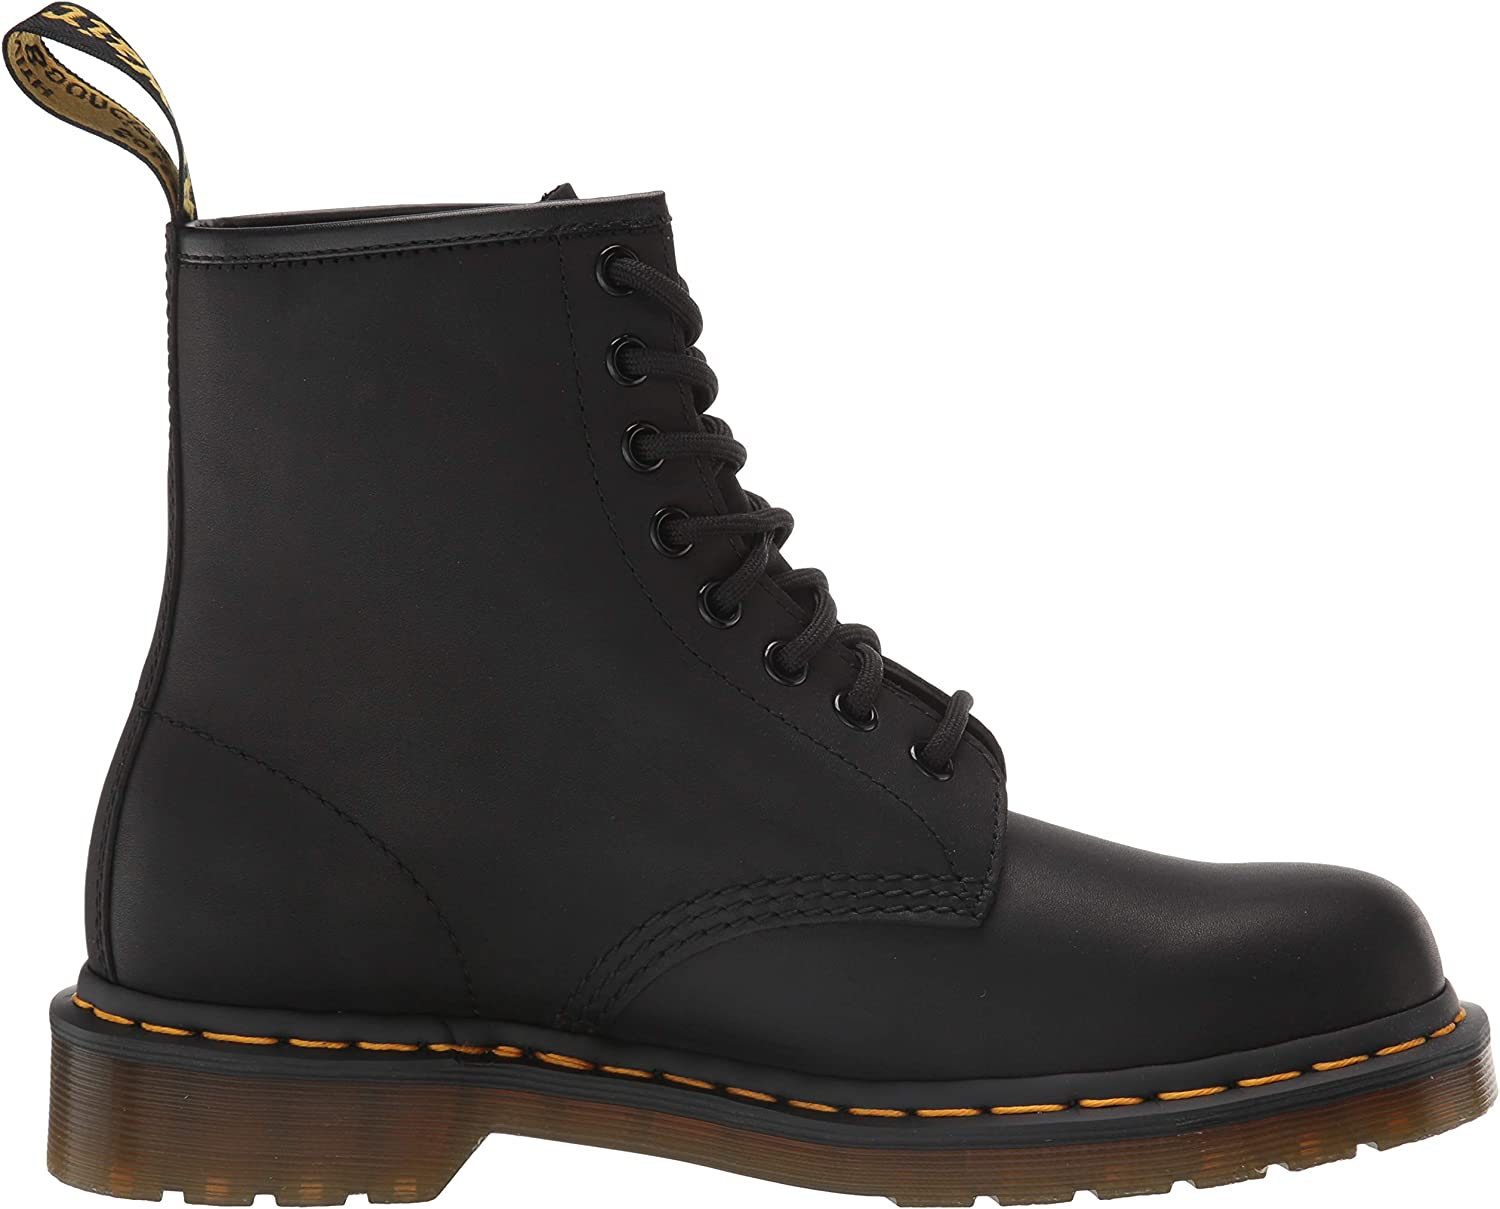 Womens 10 US Dr Martens 1460 8 Eye Boot 8 UK//Mens 9 Black Greasy